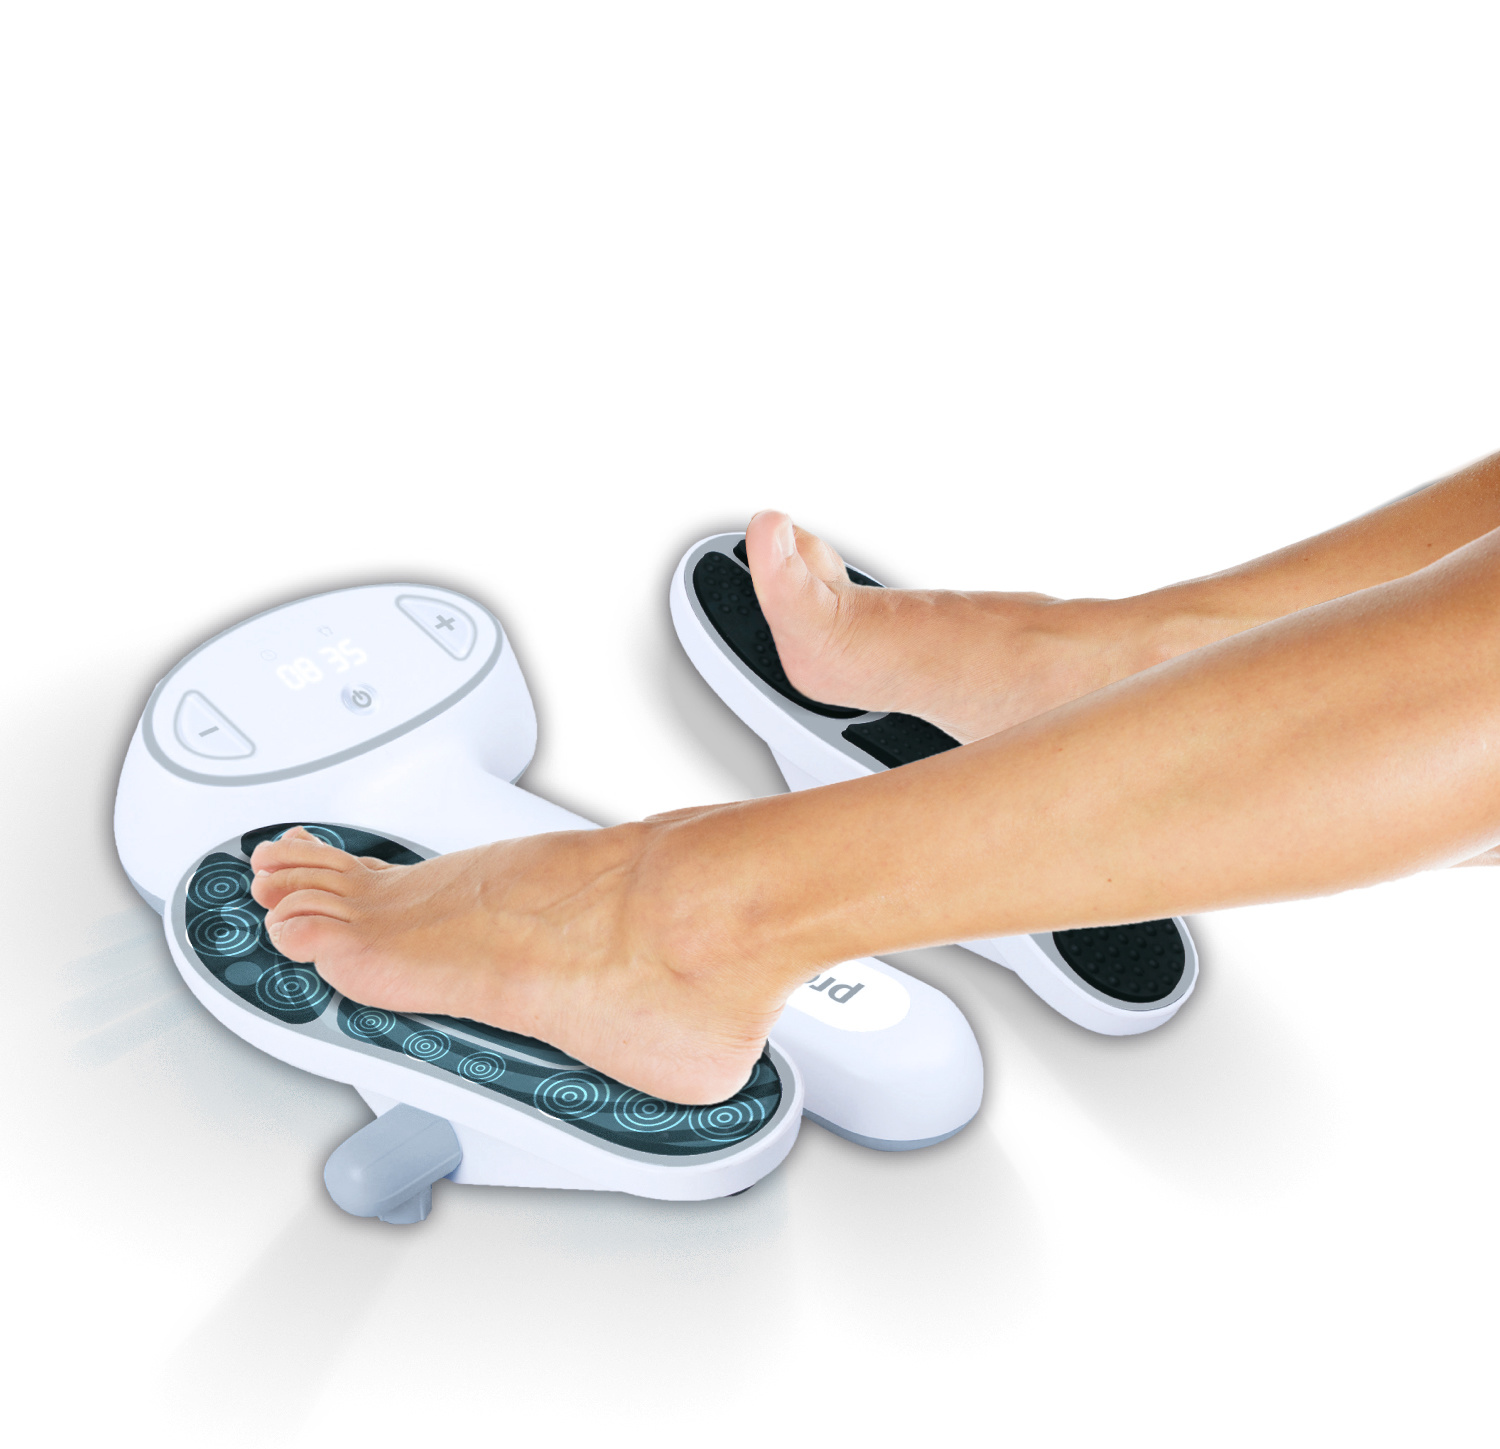 Prorelax Body Active Trainer